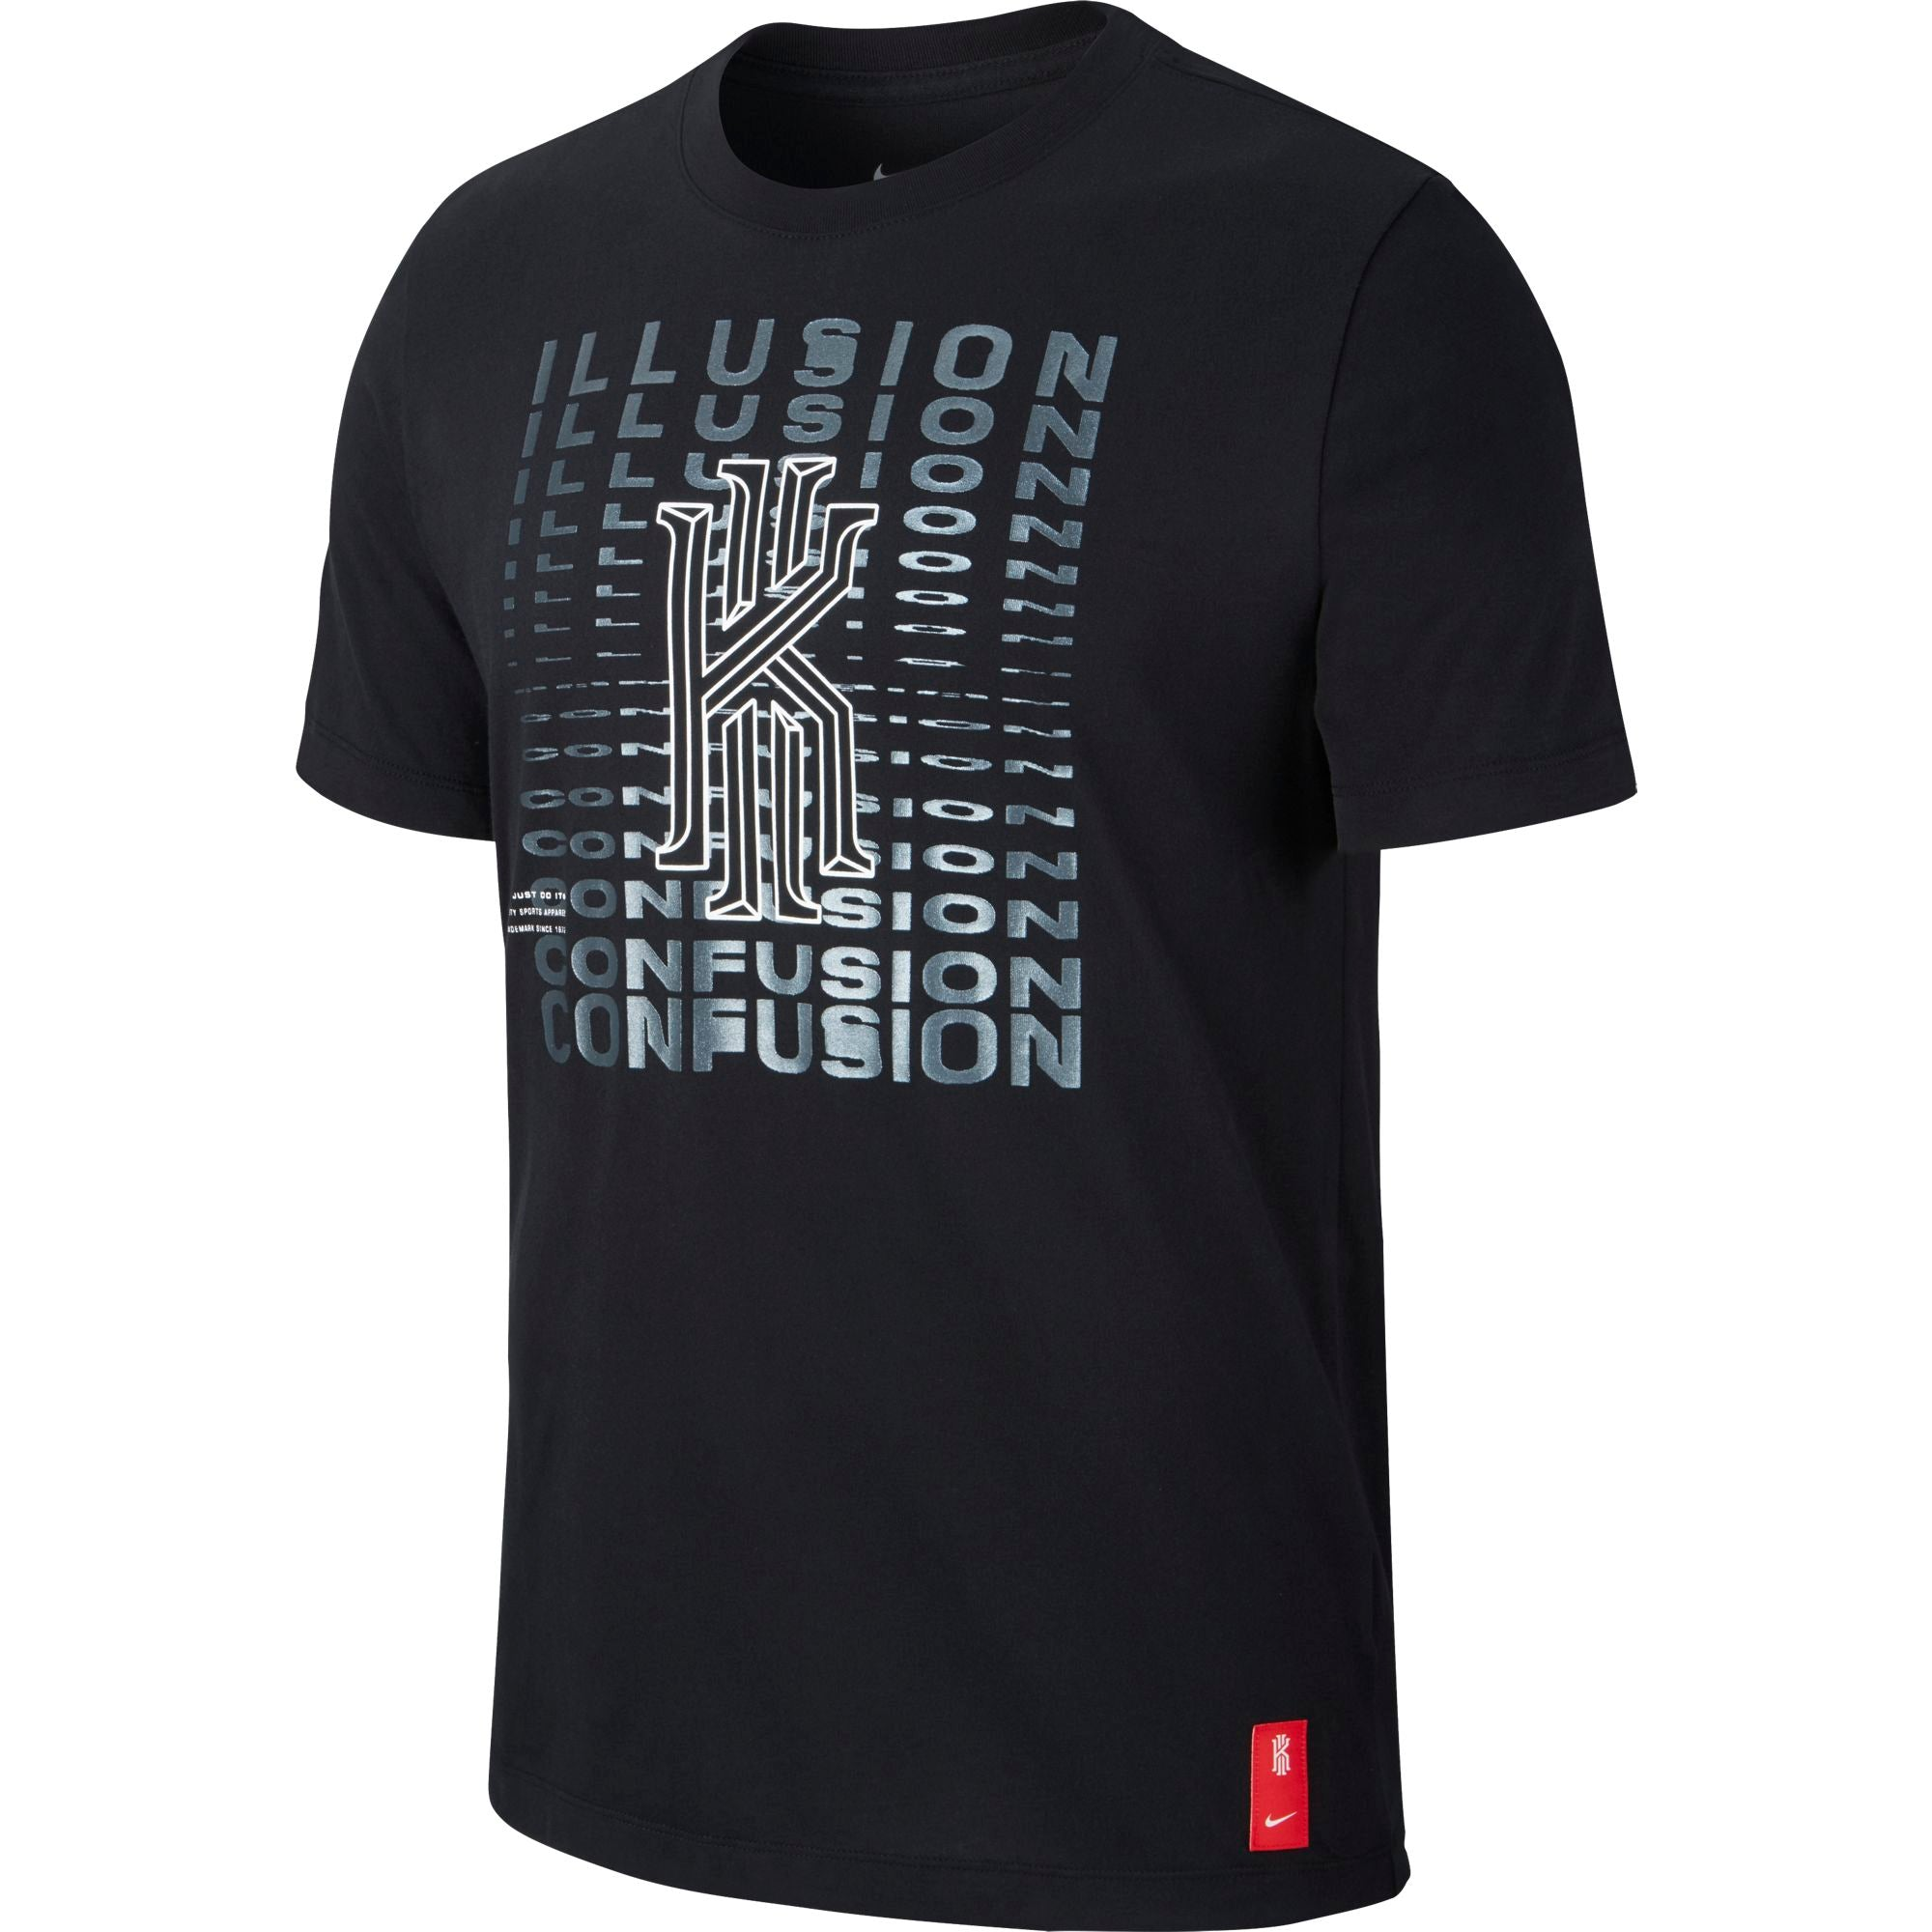 Nike Kyrie Dri-fit Basketball Illusion Confusion Logo Tee - NK-CD1322-010